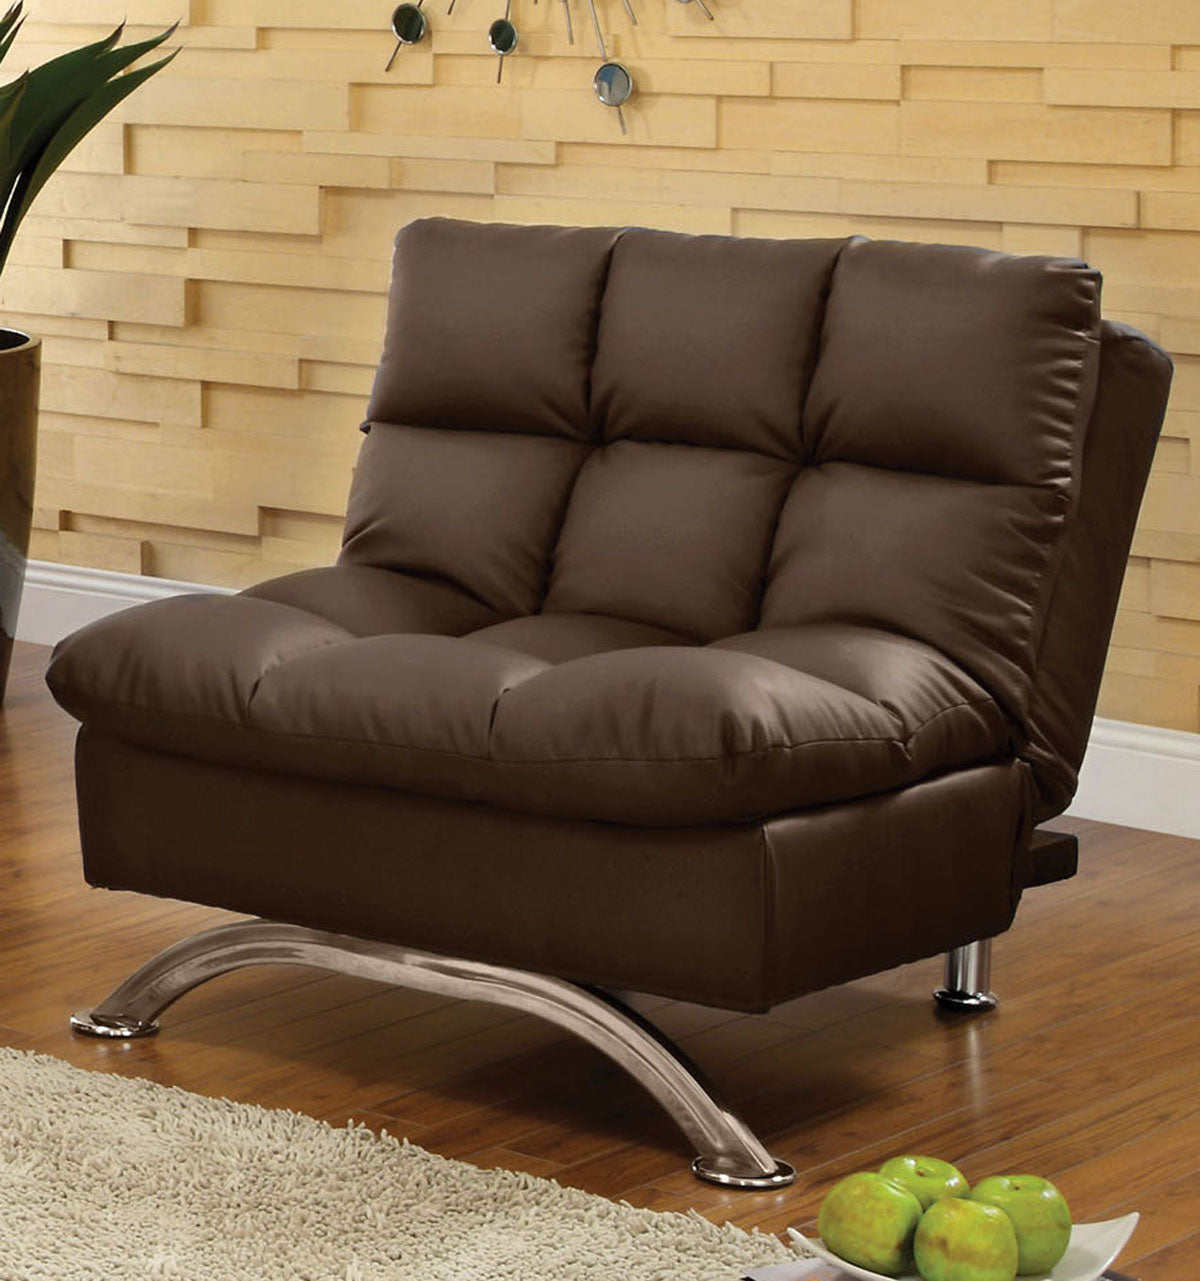 Furniture of America CM2906DK-CH Aristo Dark Brown Leatherette Chair